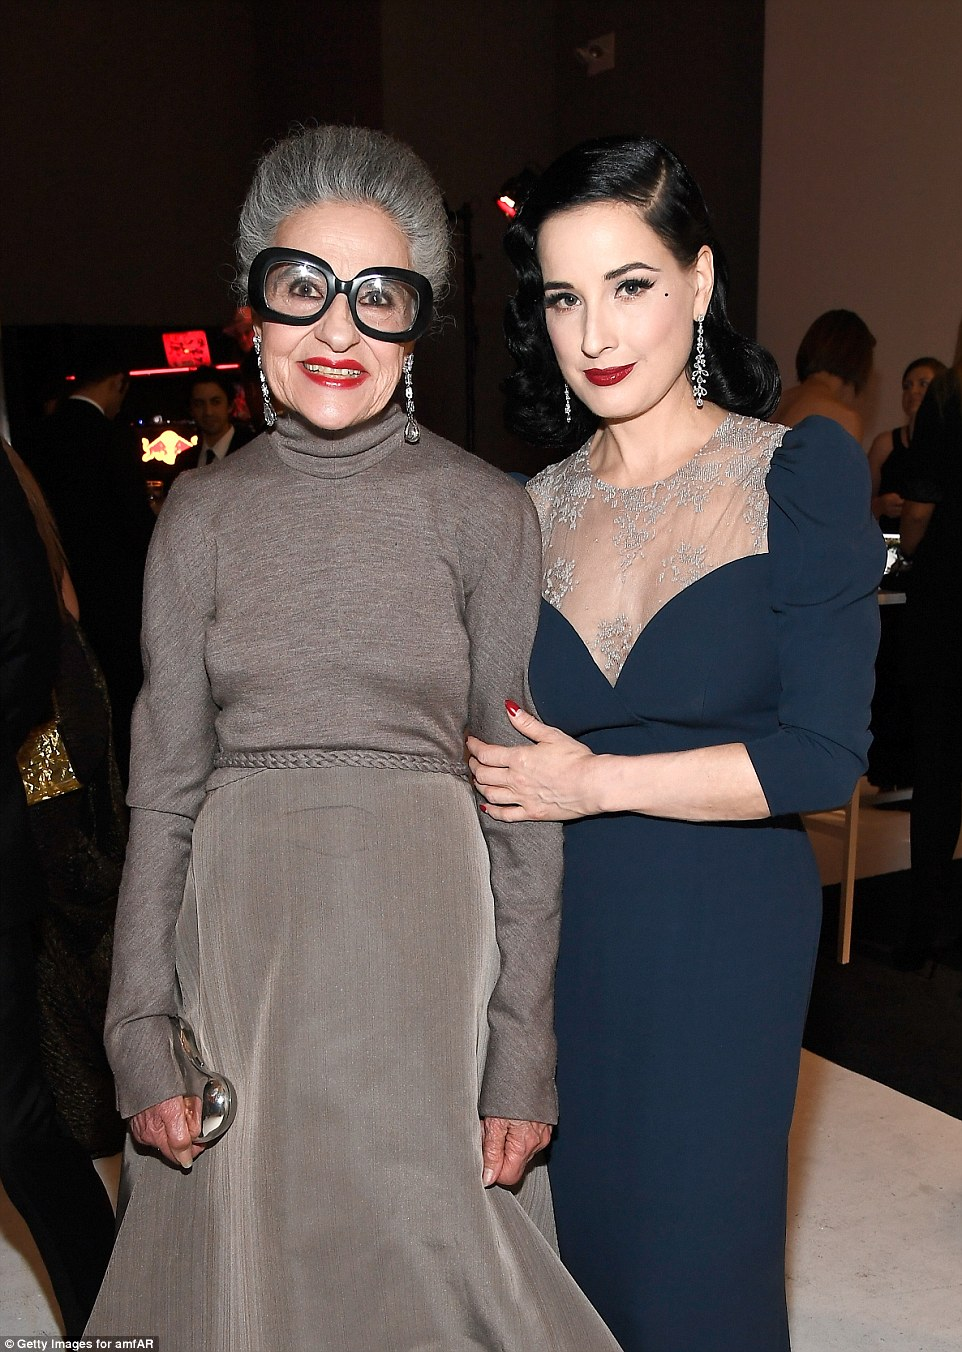 Big night out:Iris Apfel wore a chic turtleneck dress while catching up with Dita